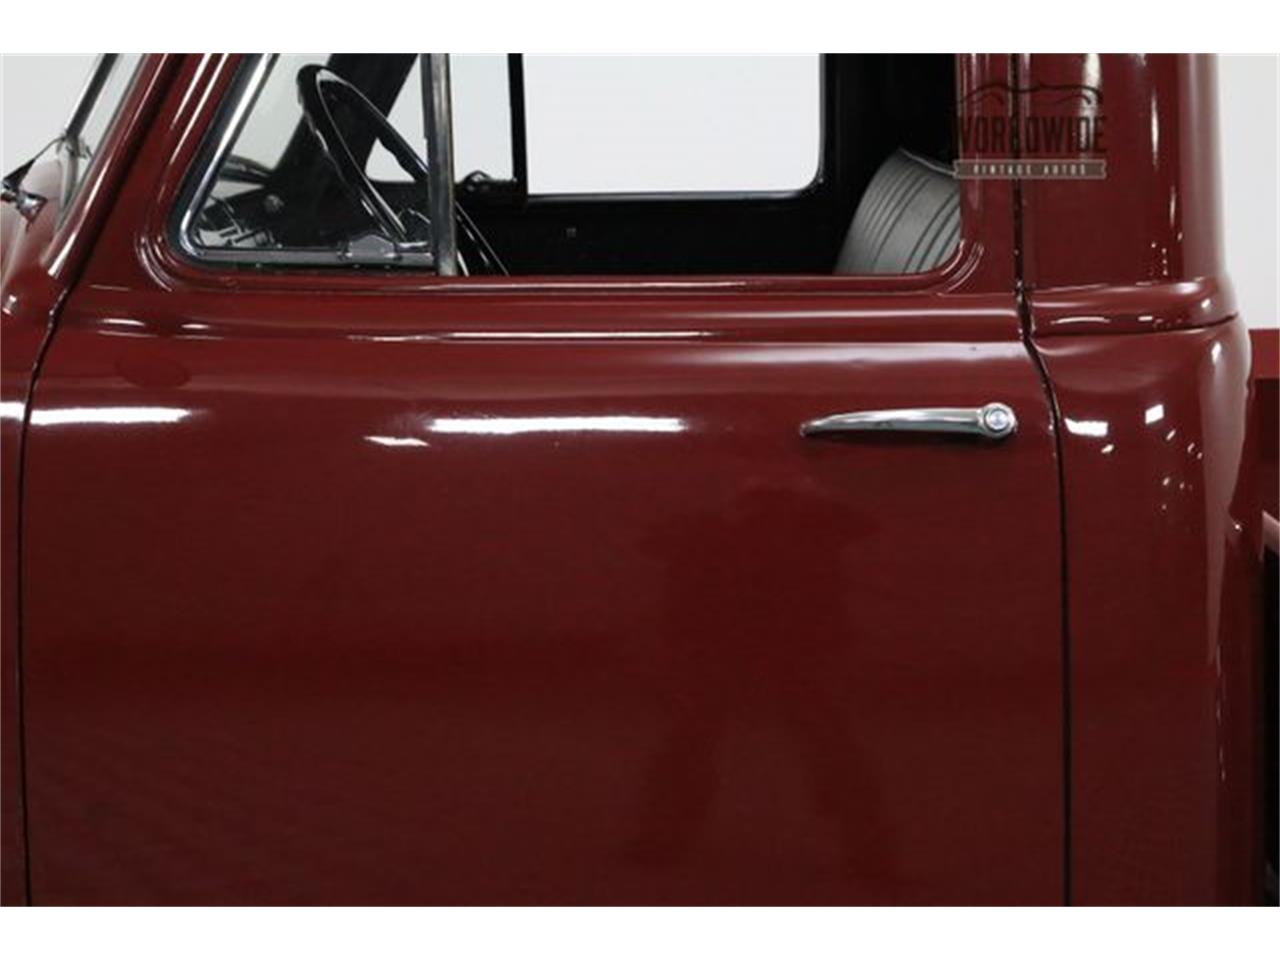 Large Picture of '53 GMC Pickup - $21,900.00 Offered by Worldwide Vintage Autos - MBI2